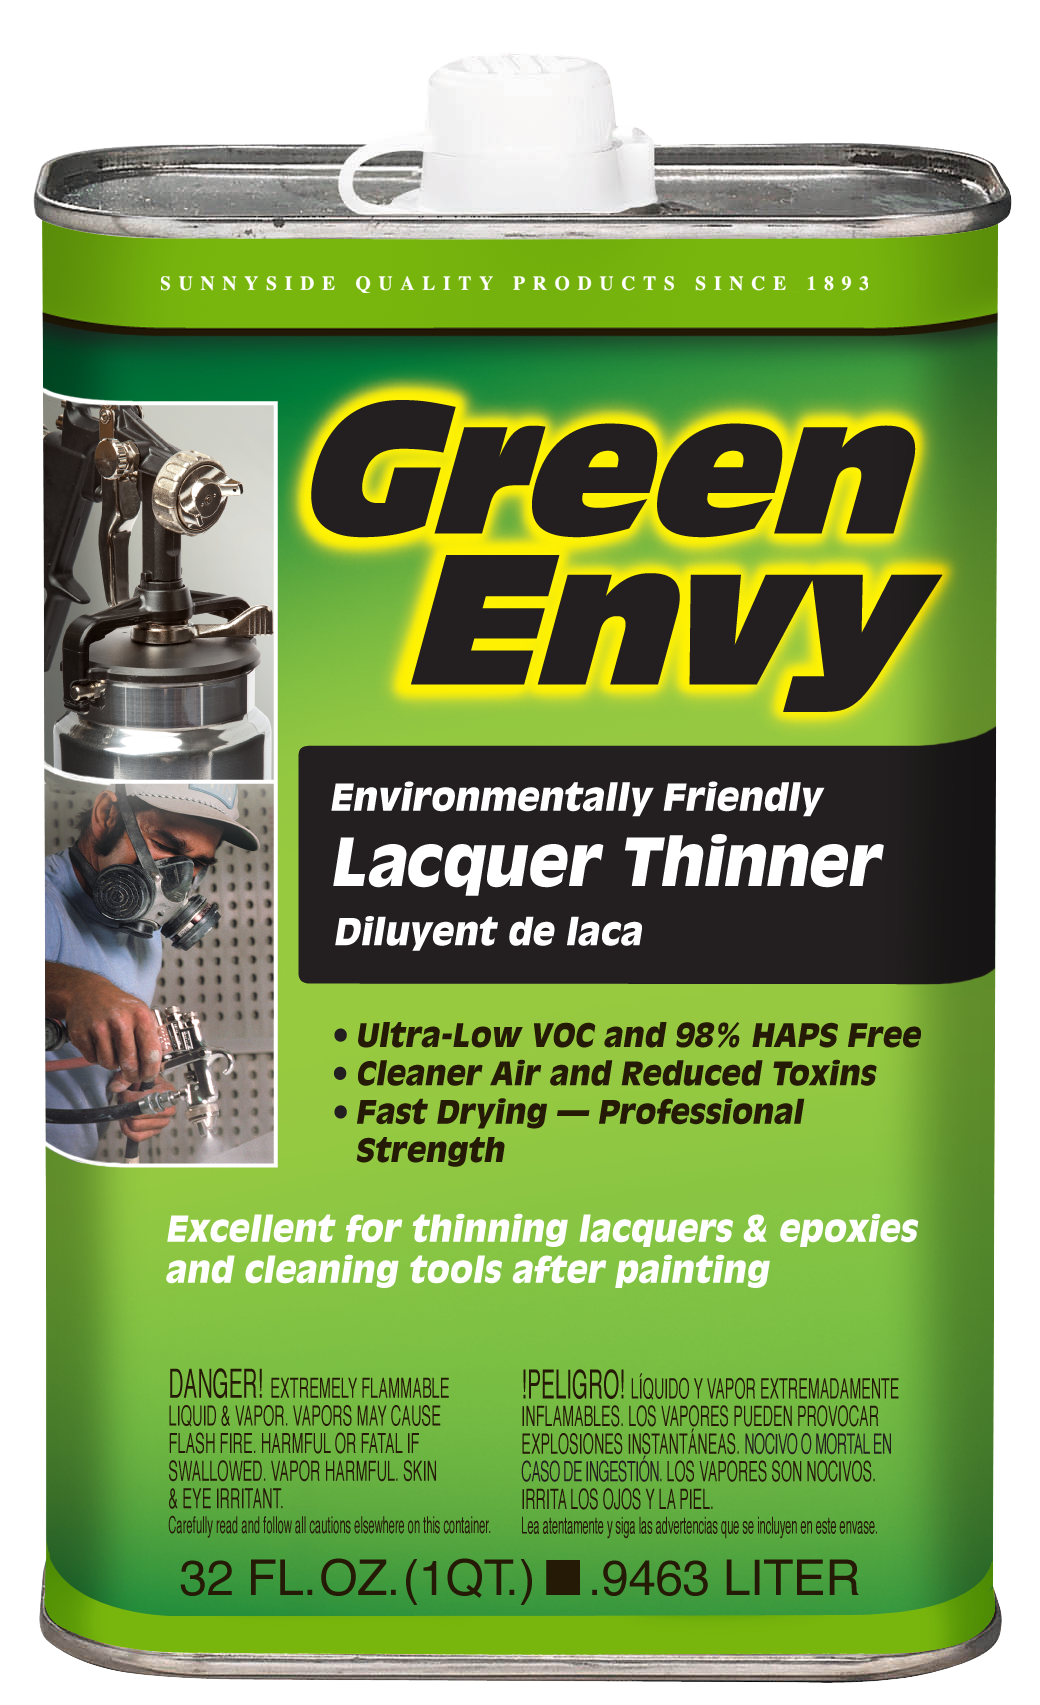 GREEN ENVY LACQUER THINNER Product Image